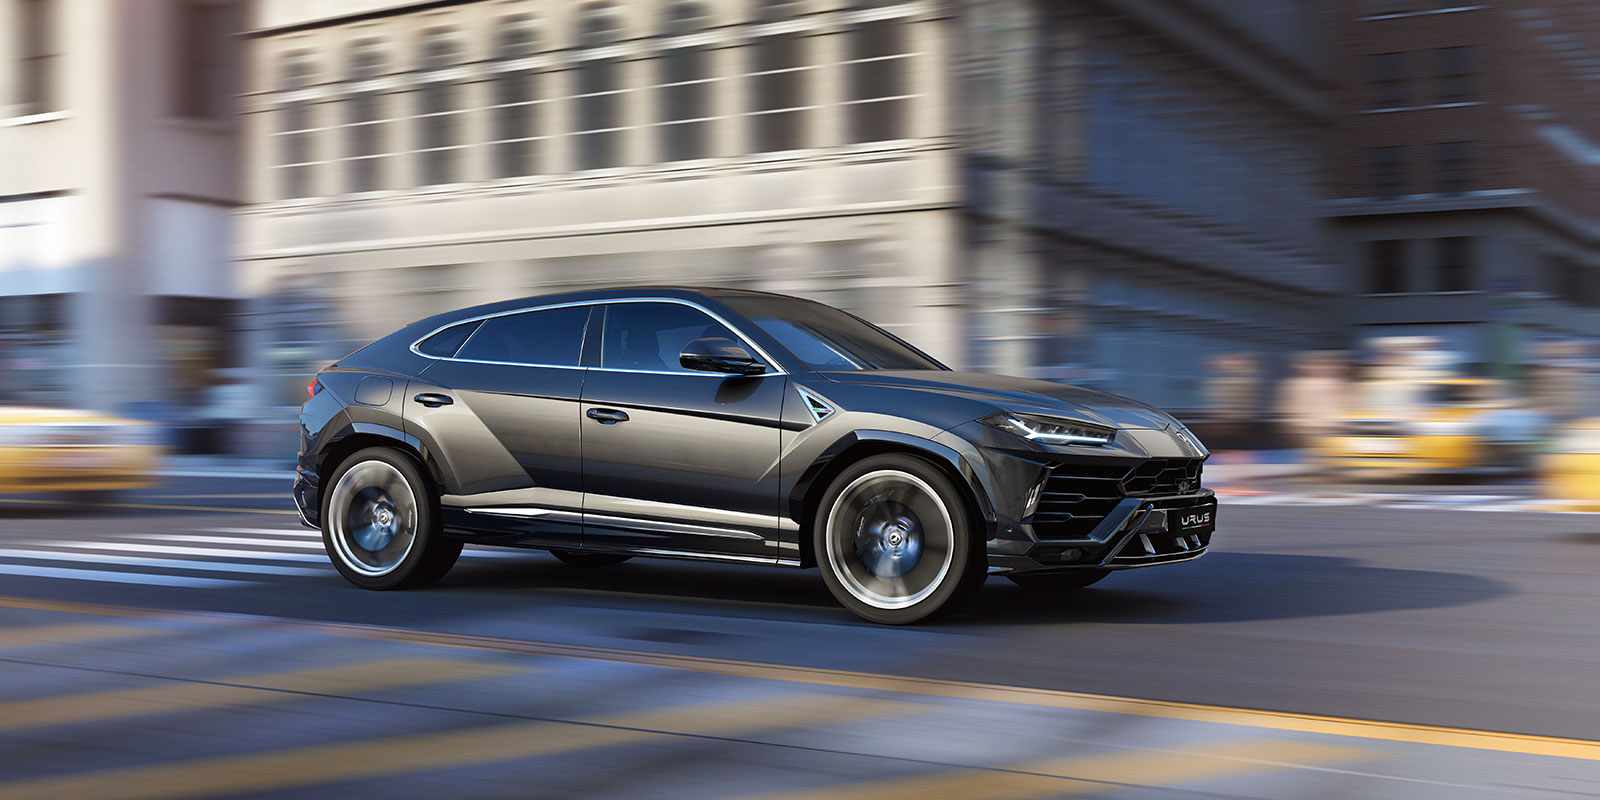 Lamborghini Urus - The World's First Super Sport Utility Vehicle image 12